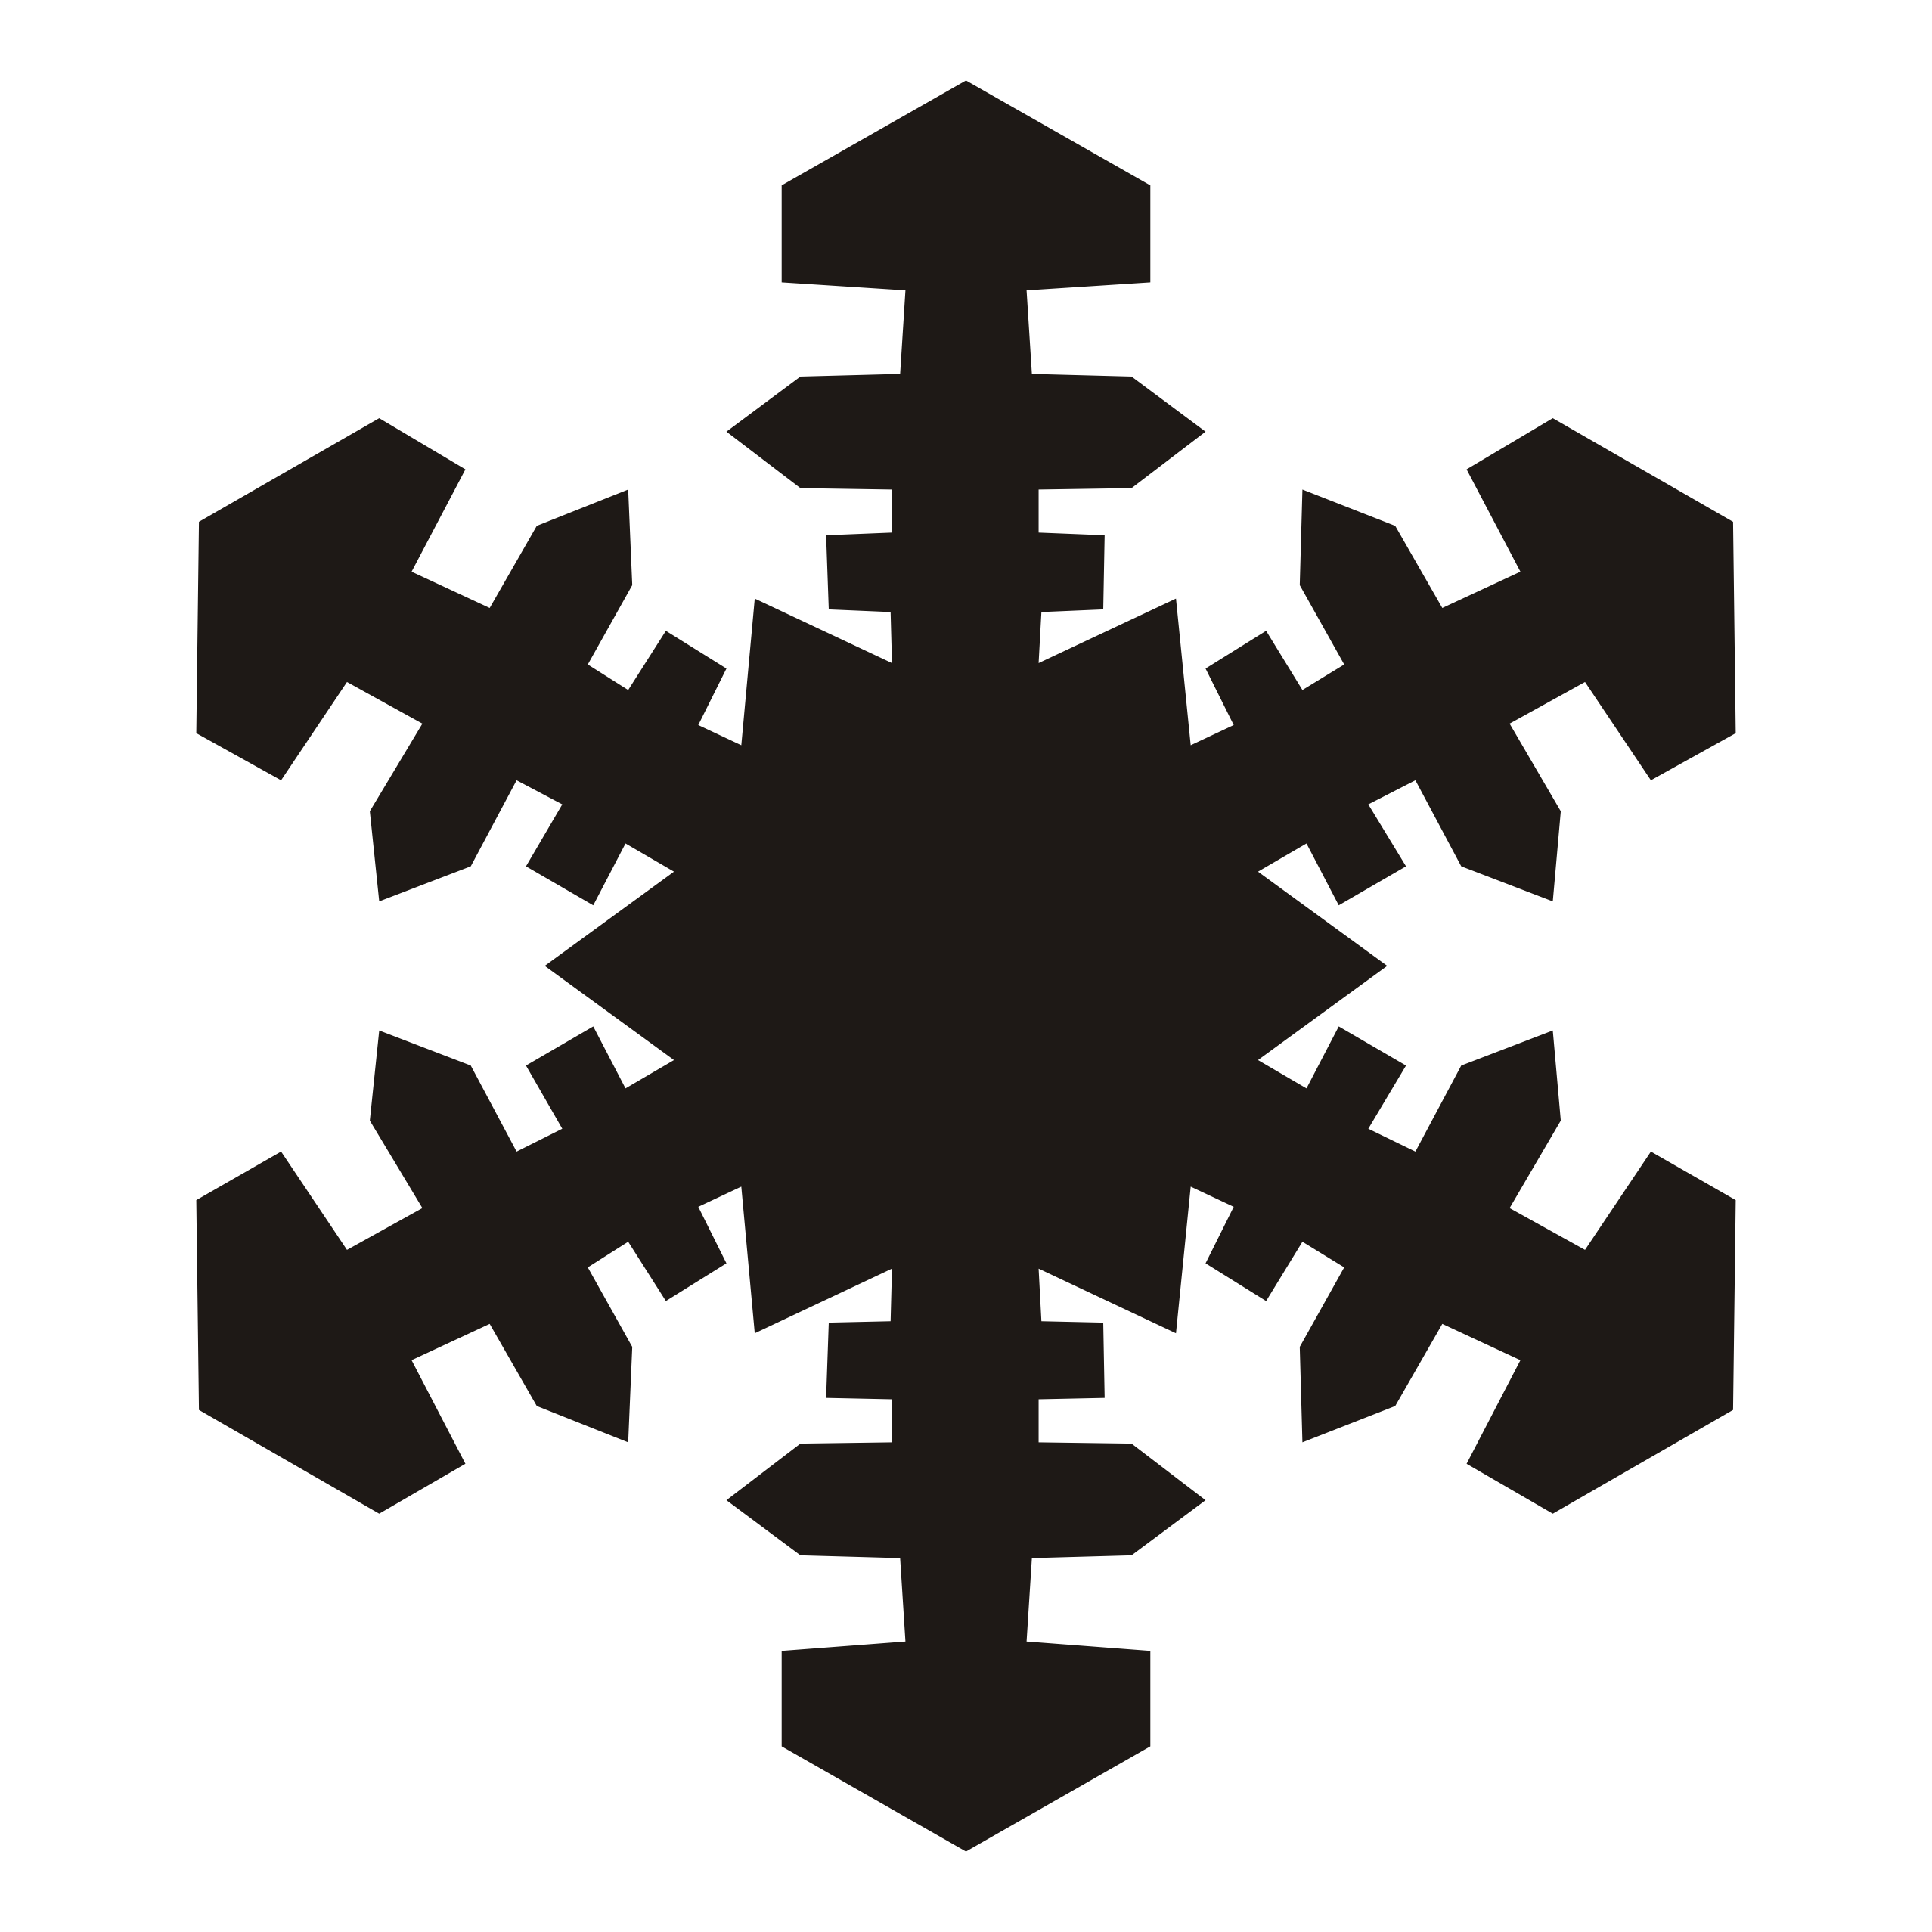 picture transparent Snowflakes clipart. Snowflake black and white.